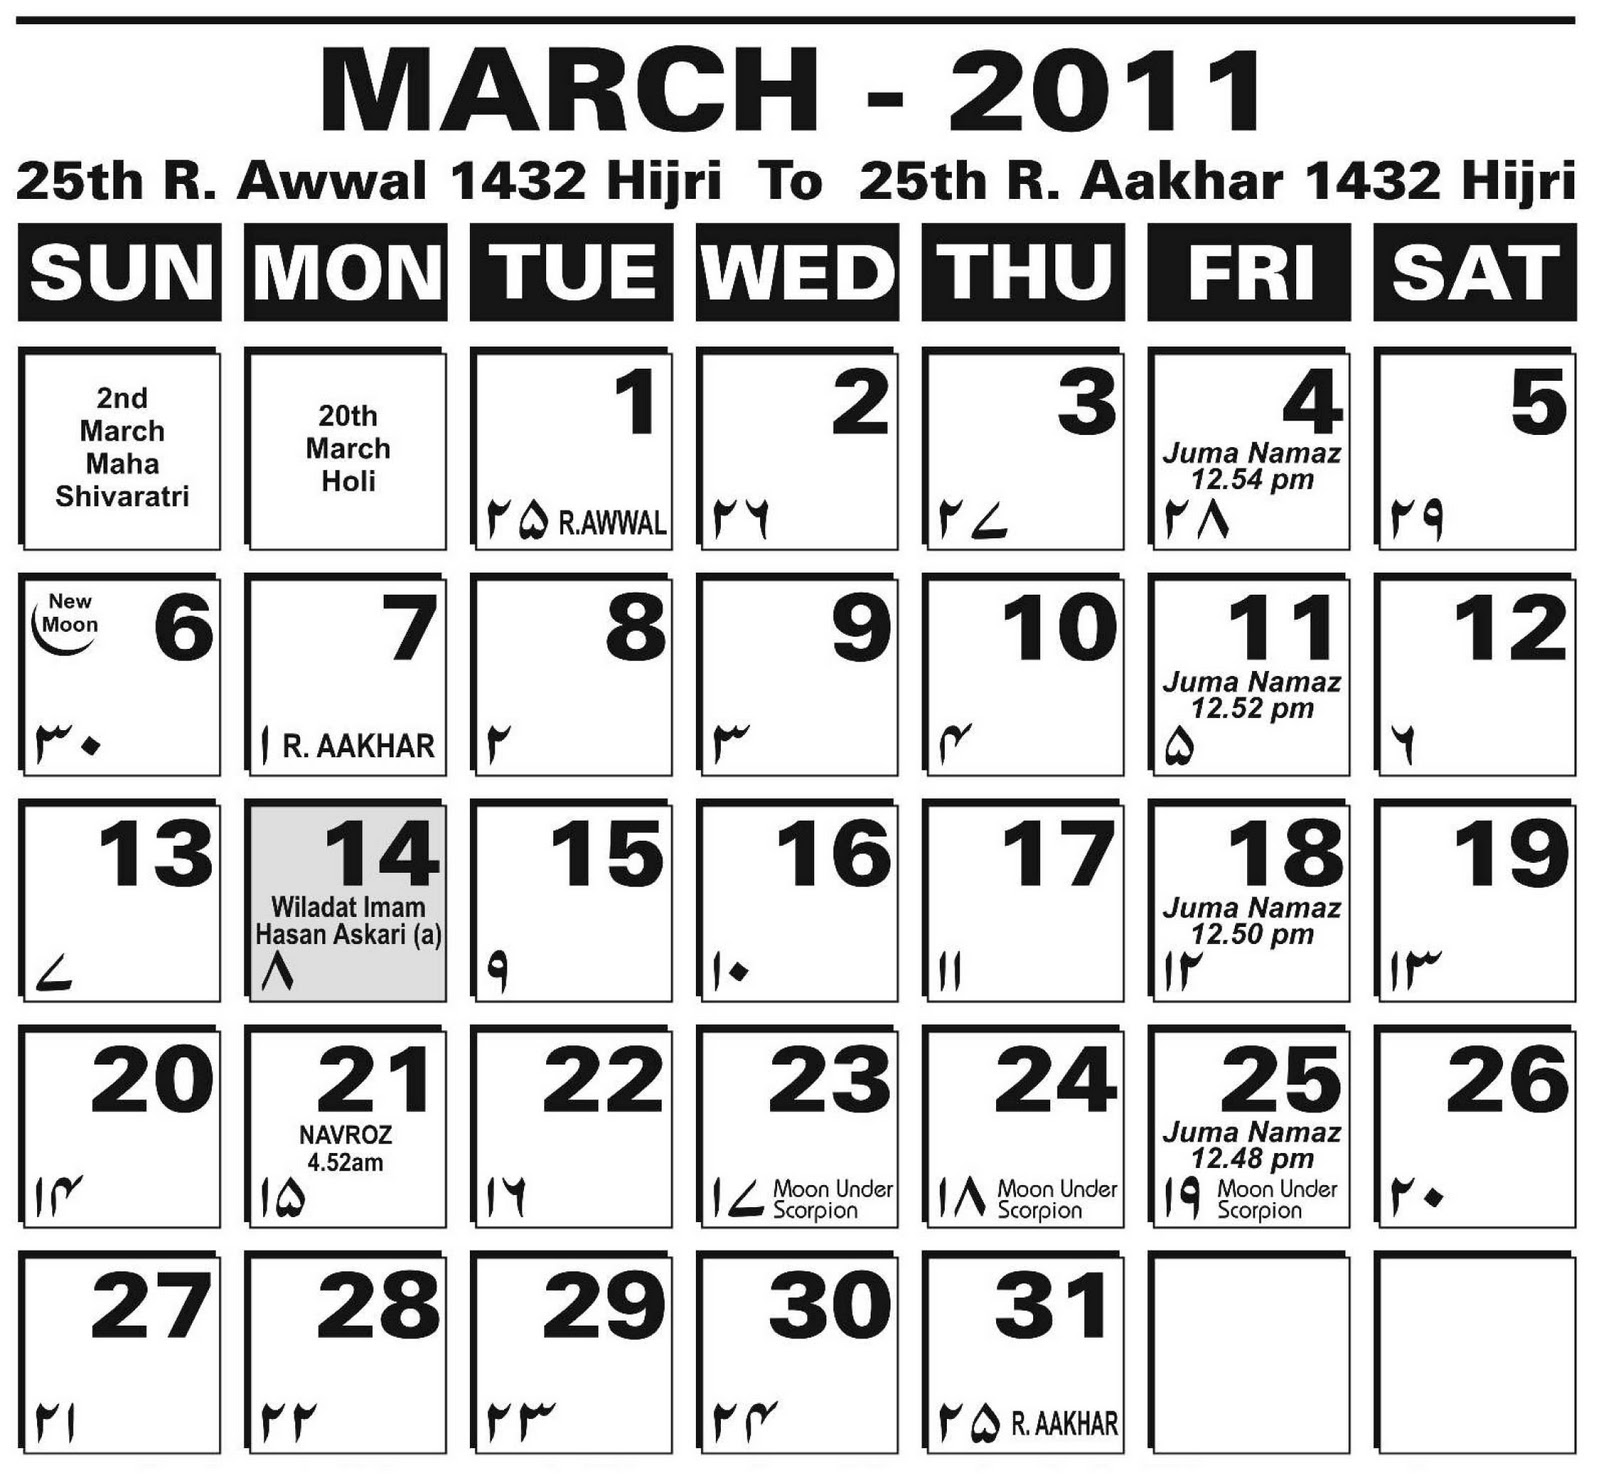 Mumbai Shia News: March 2011: Islamic Calendar